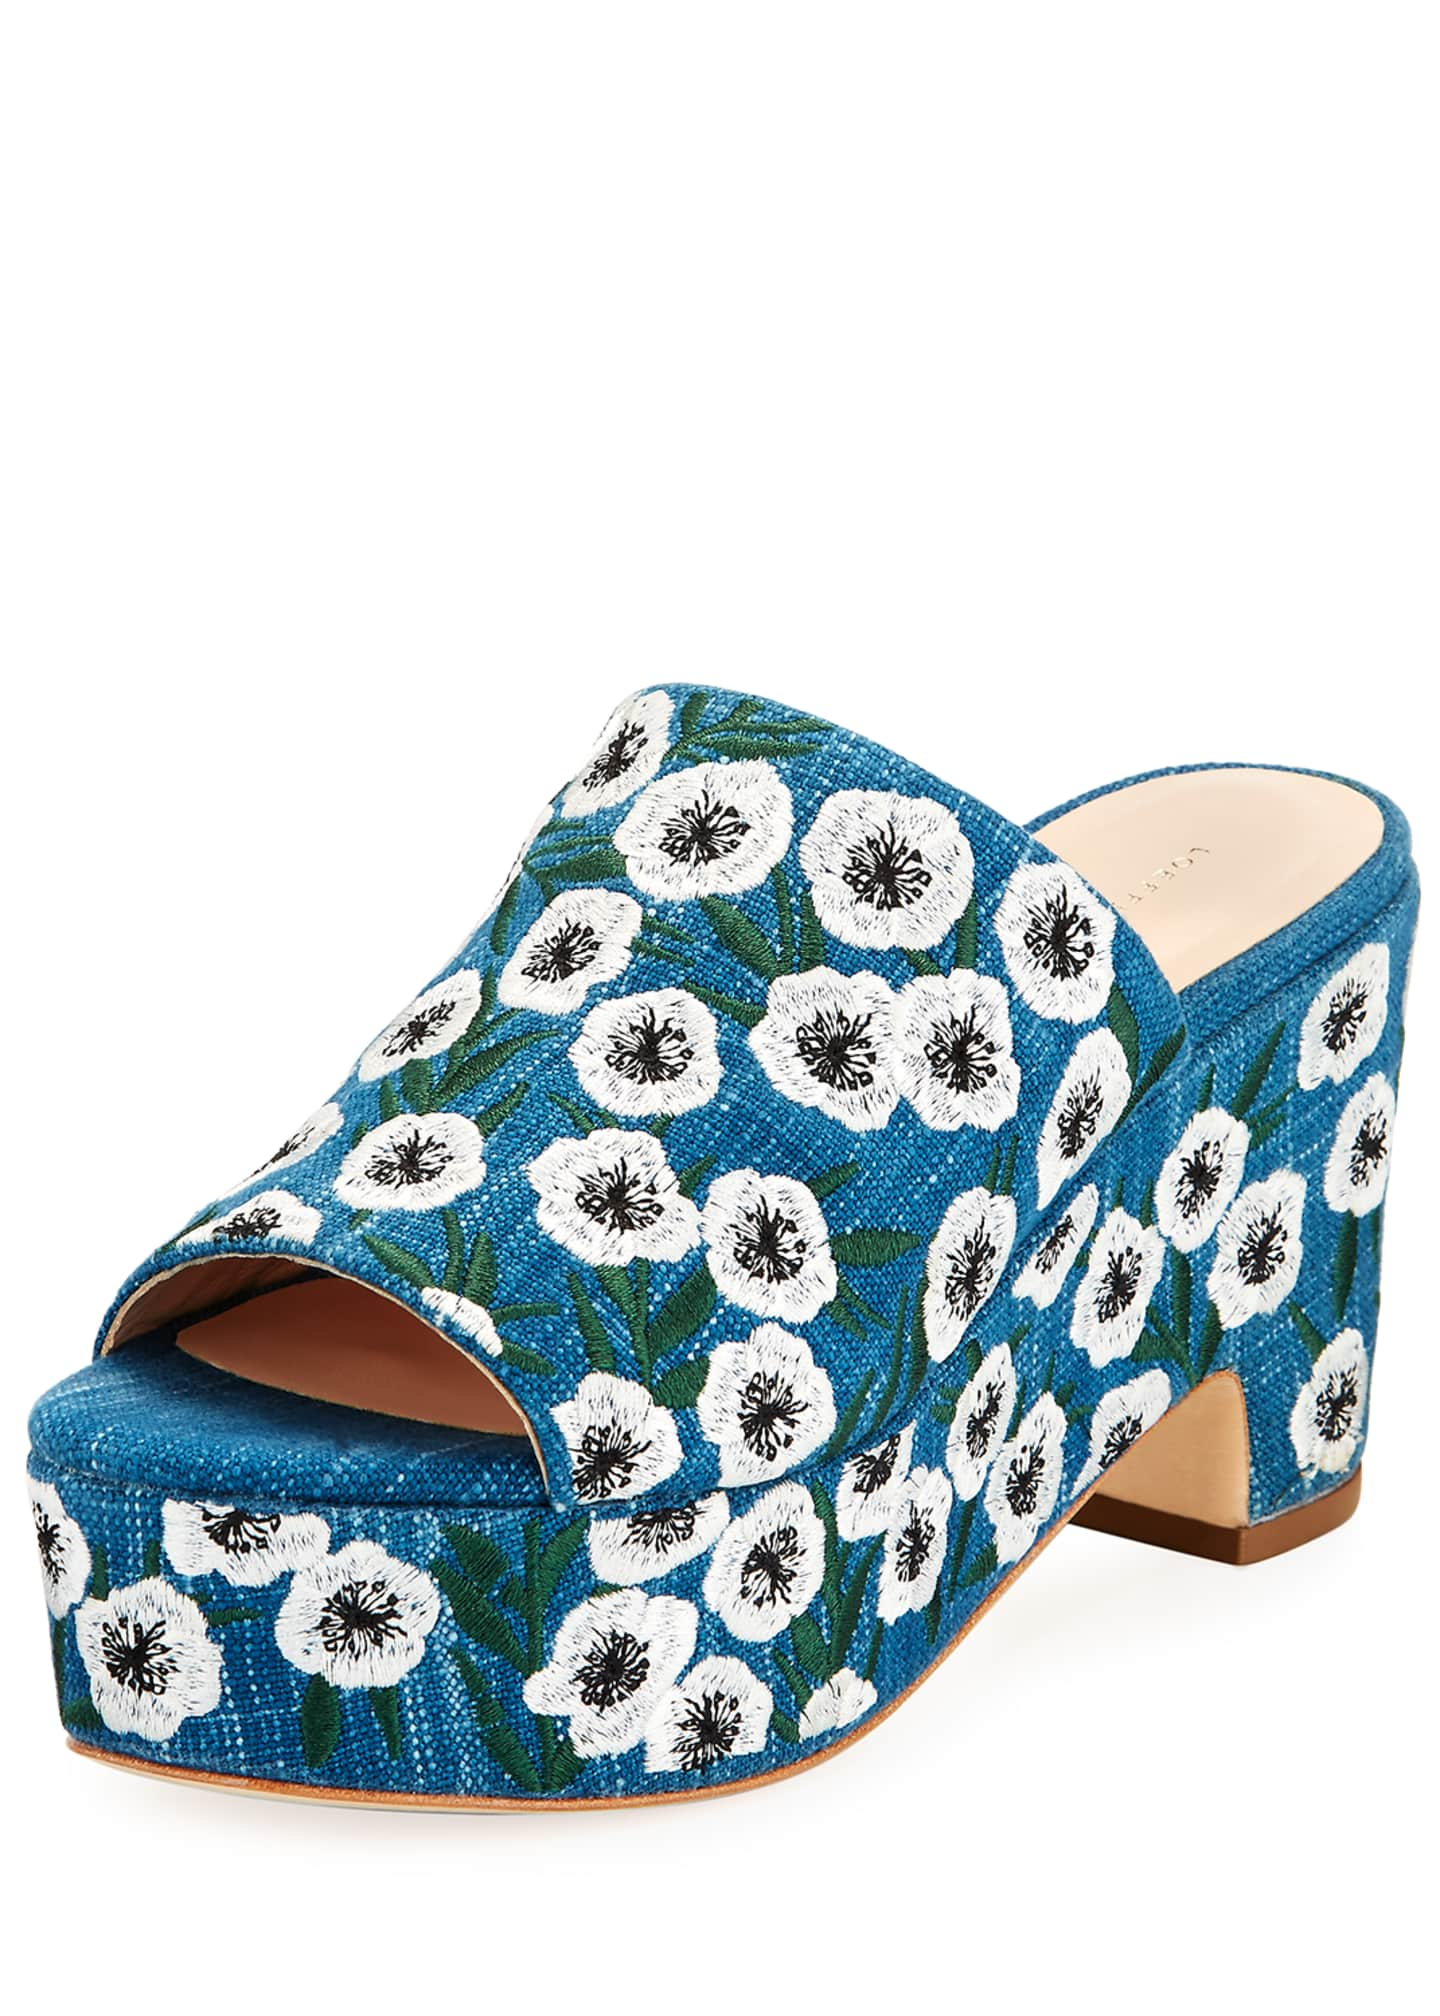 Loeffler Randall Amara Embroidered Denim Mule Sandals, Blue